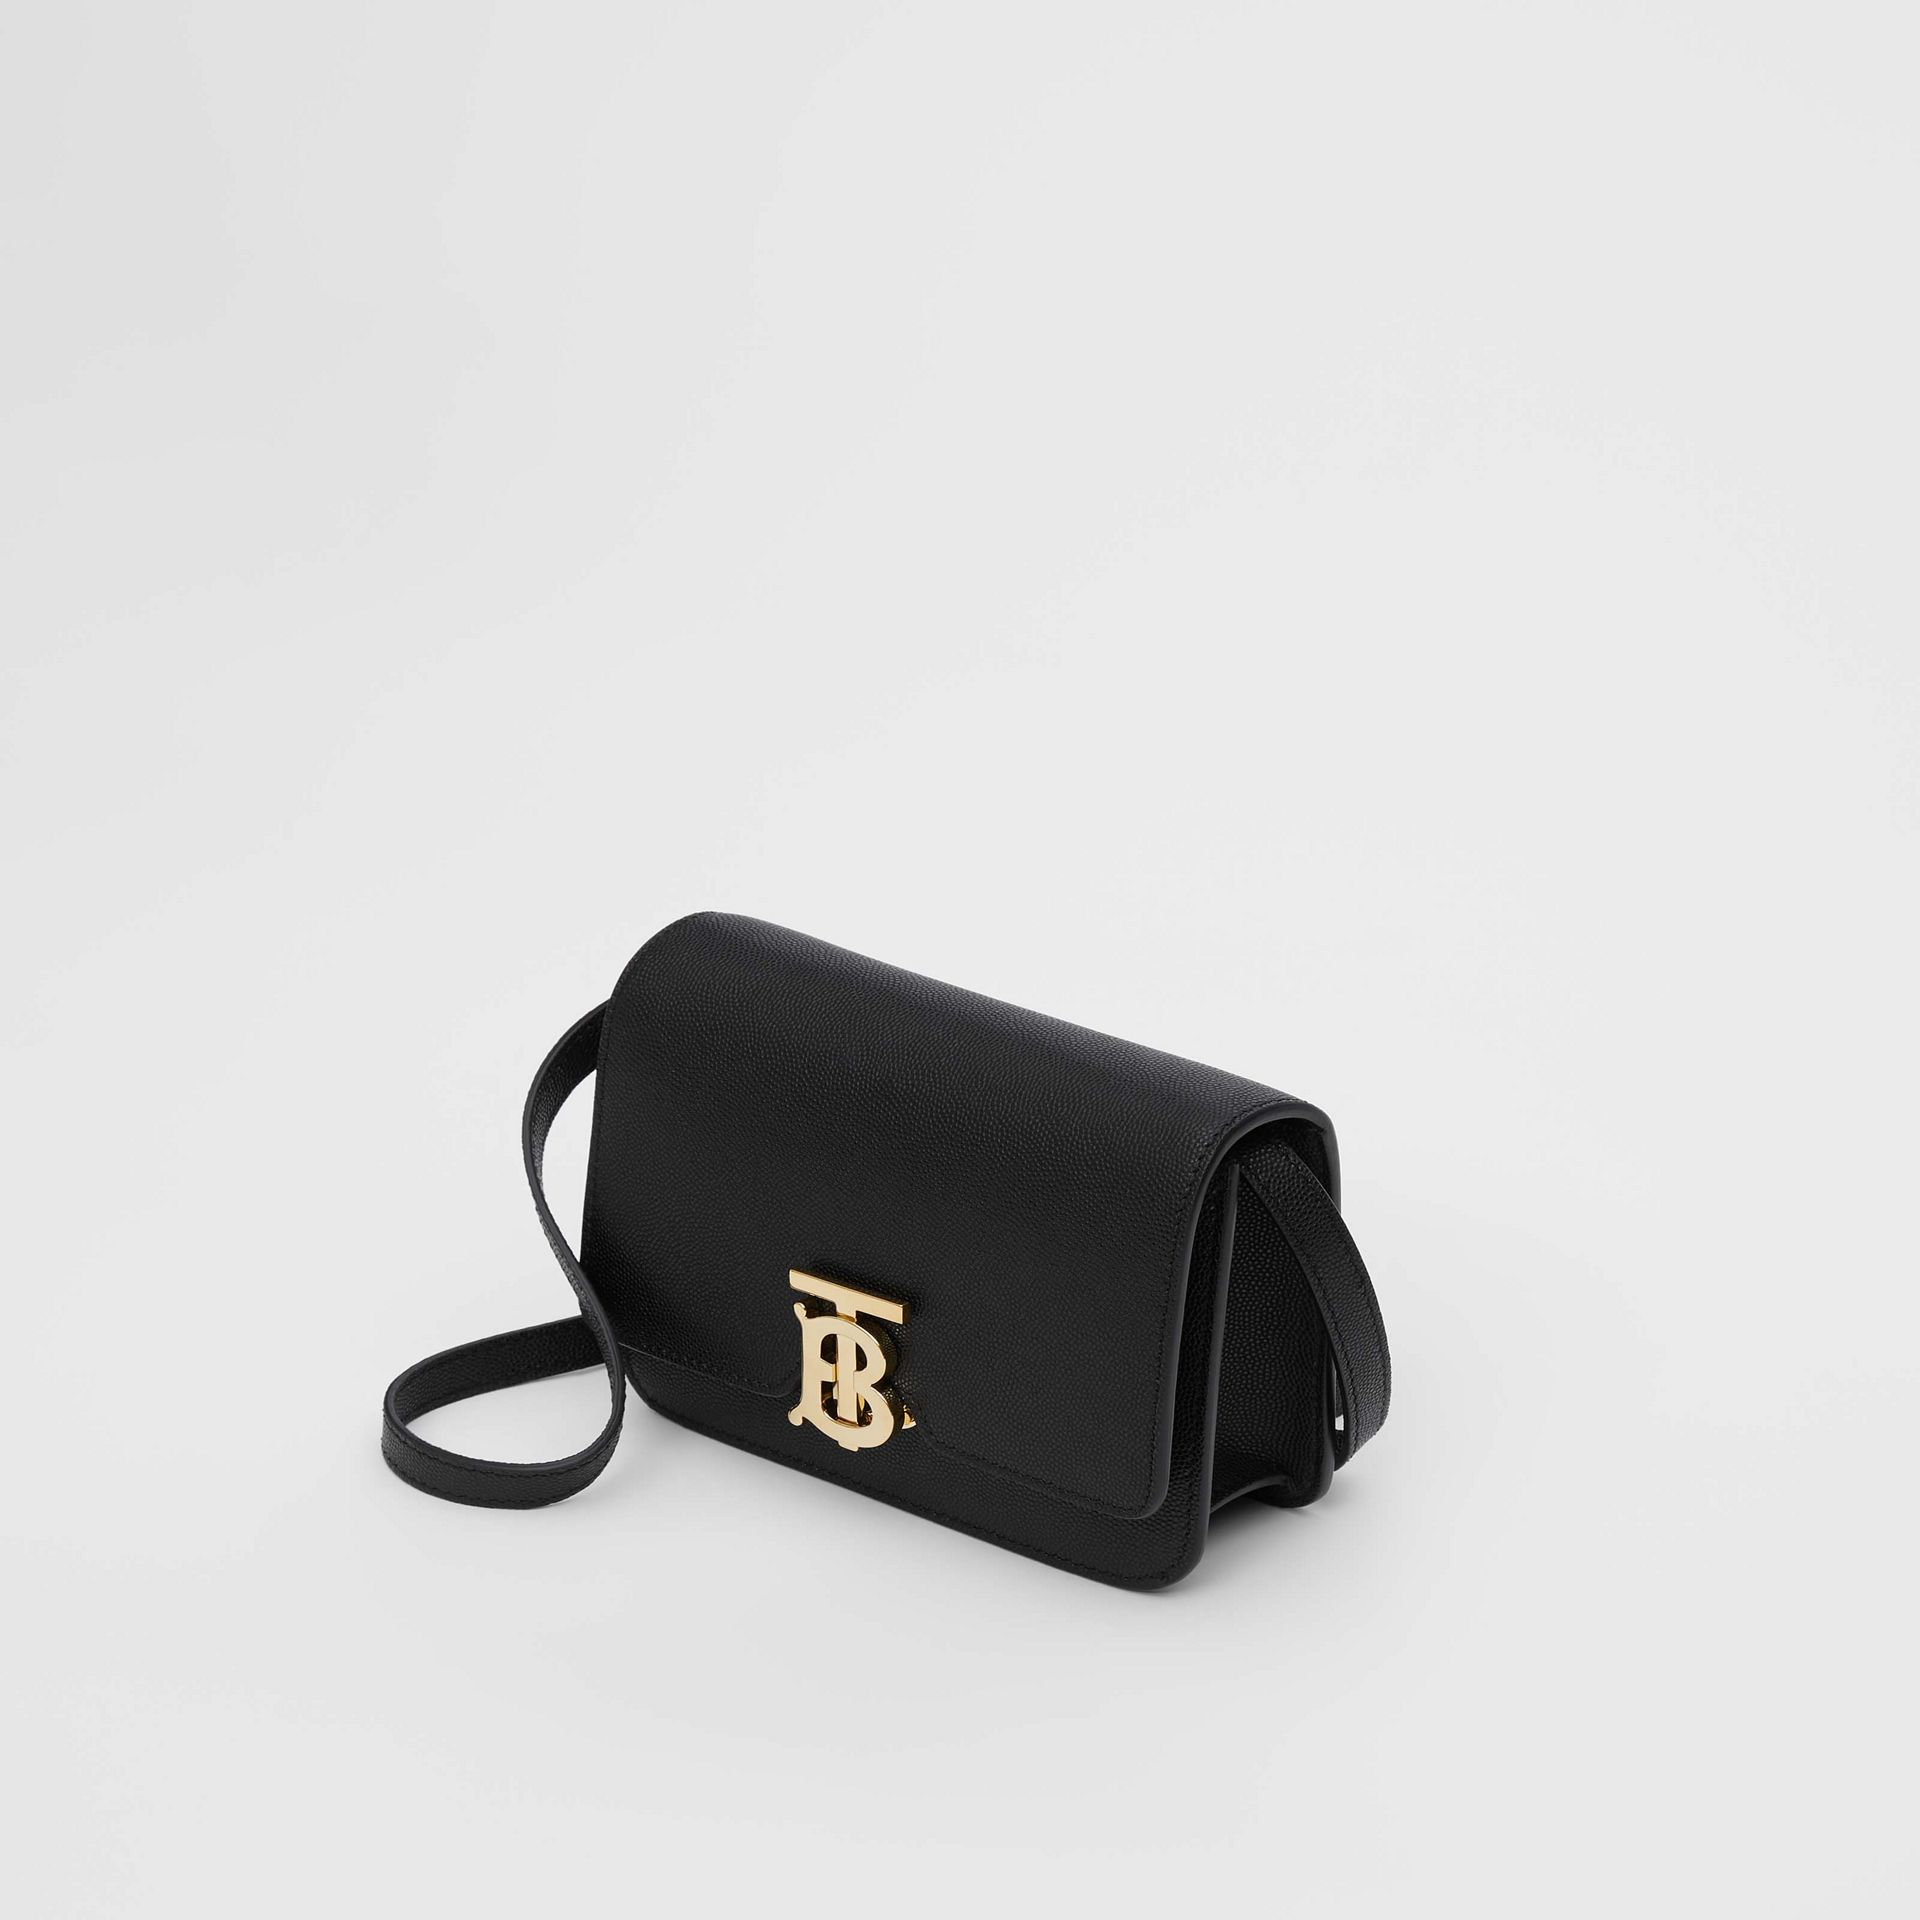 Mini Grainy Leather TB Bag in Black - Women | Burberry - gallery image 2